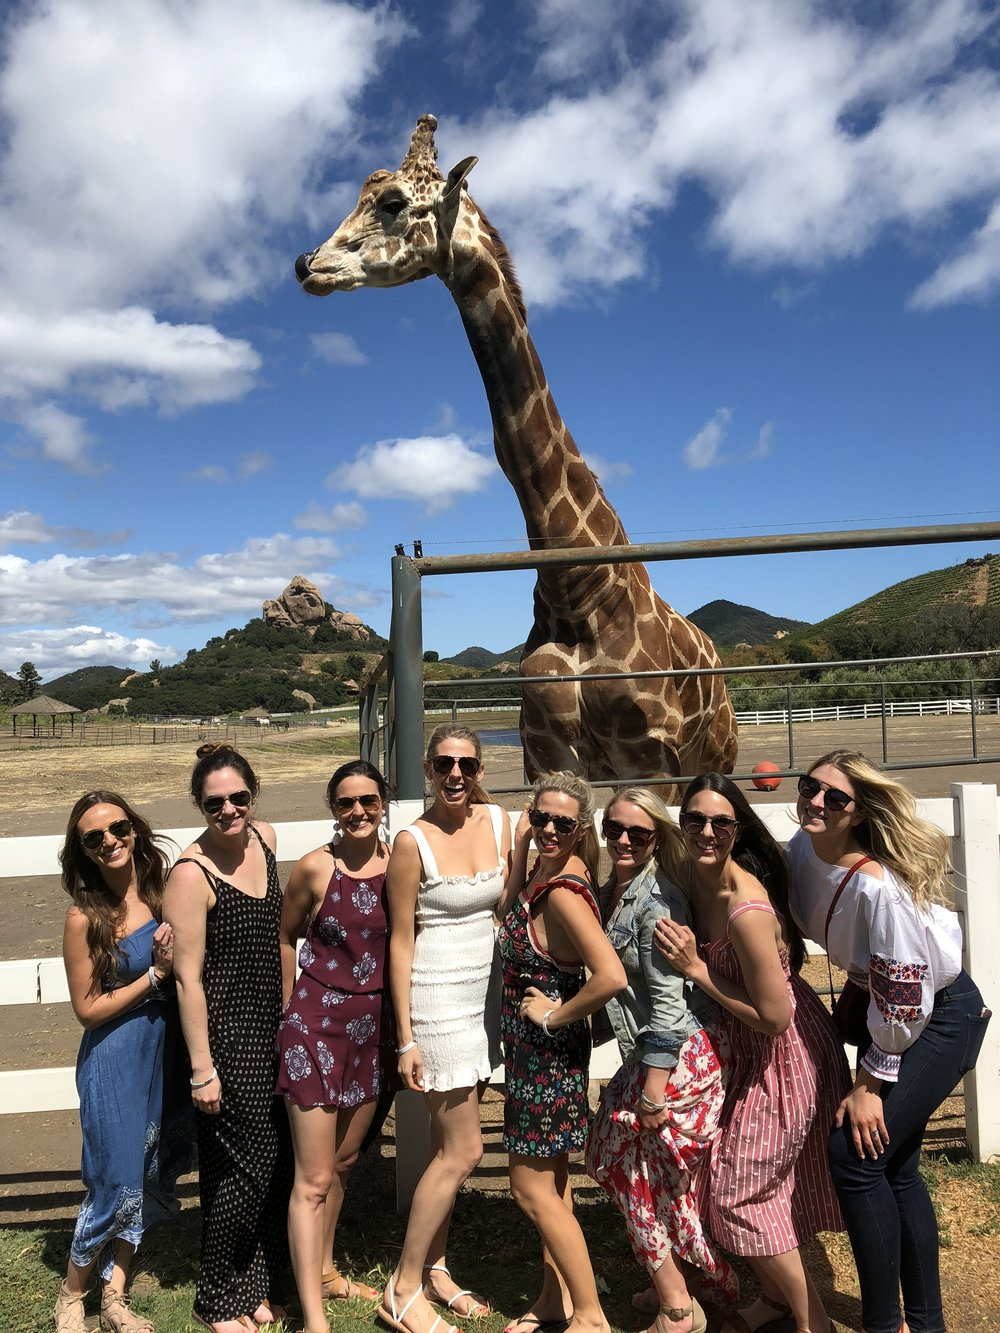 Stanley the giraffe loved the bachelorette party girls